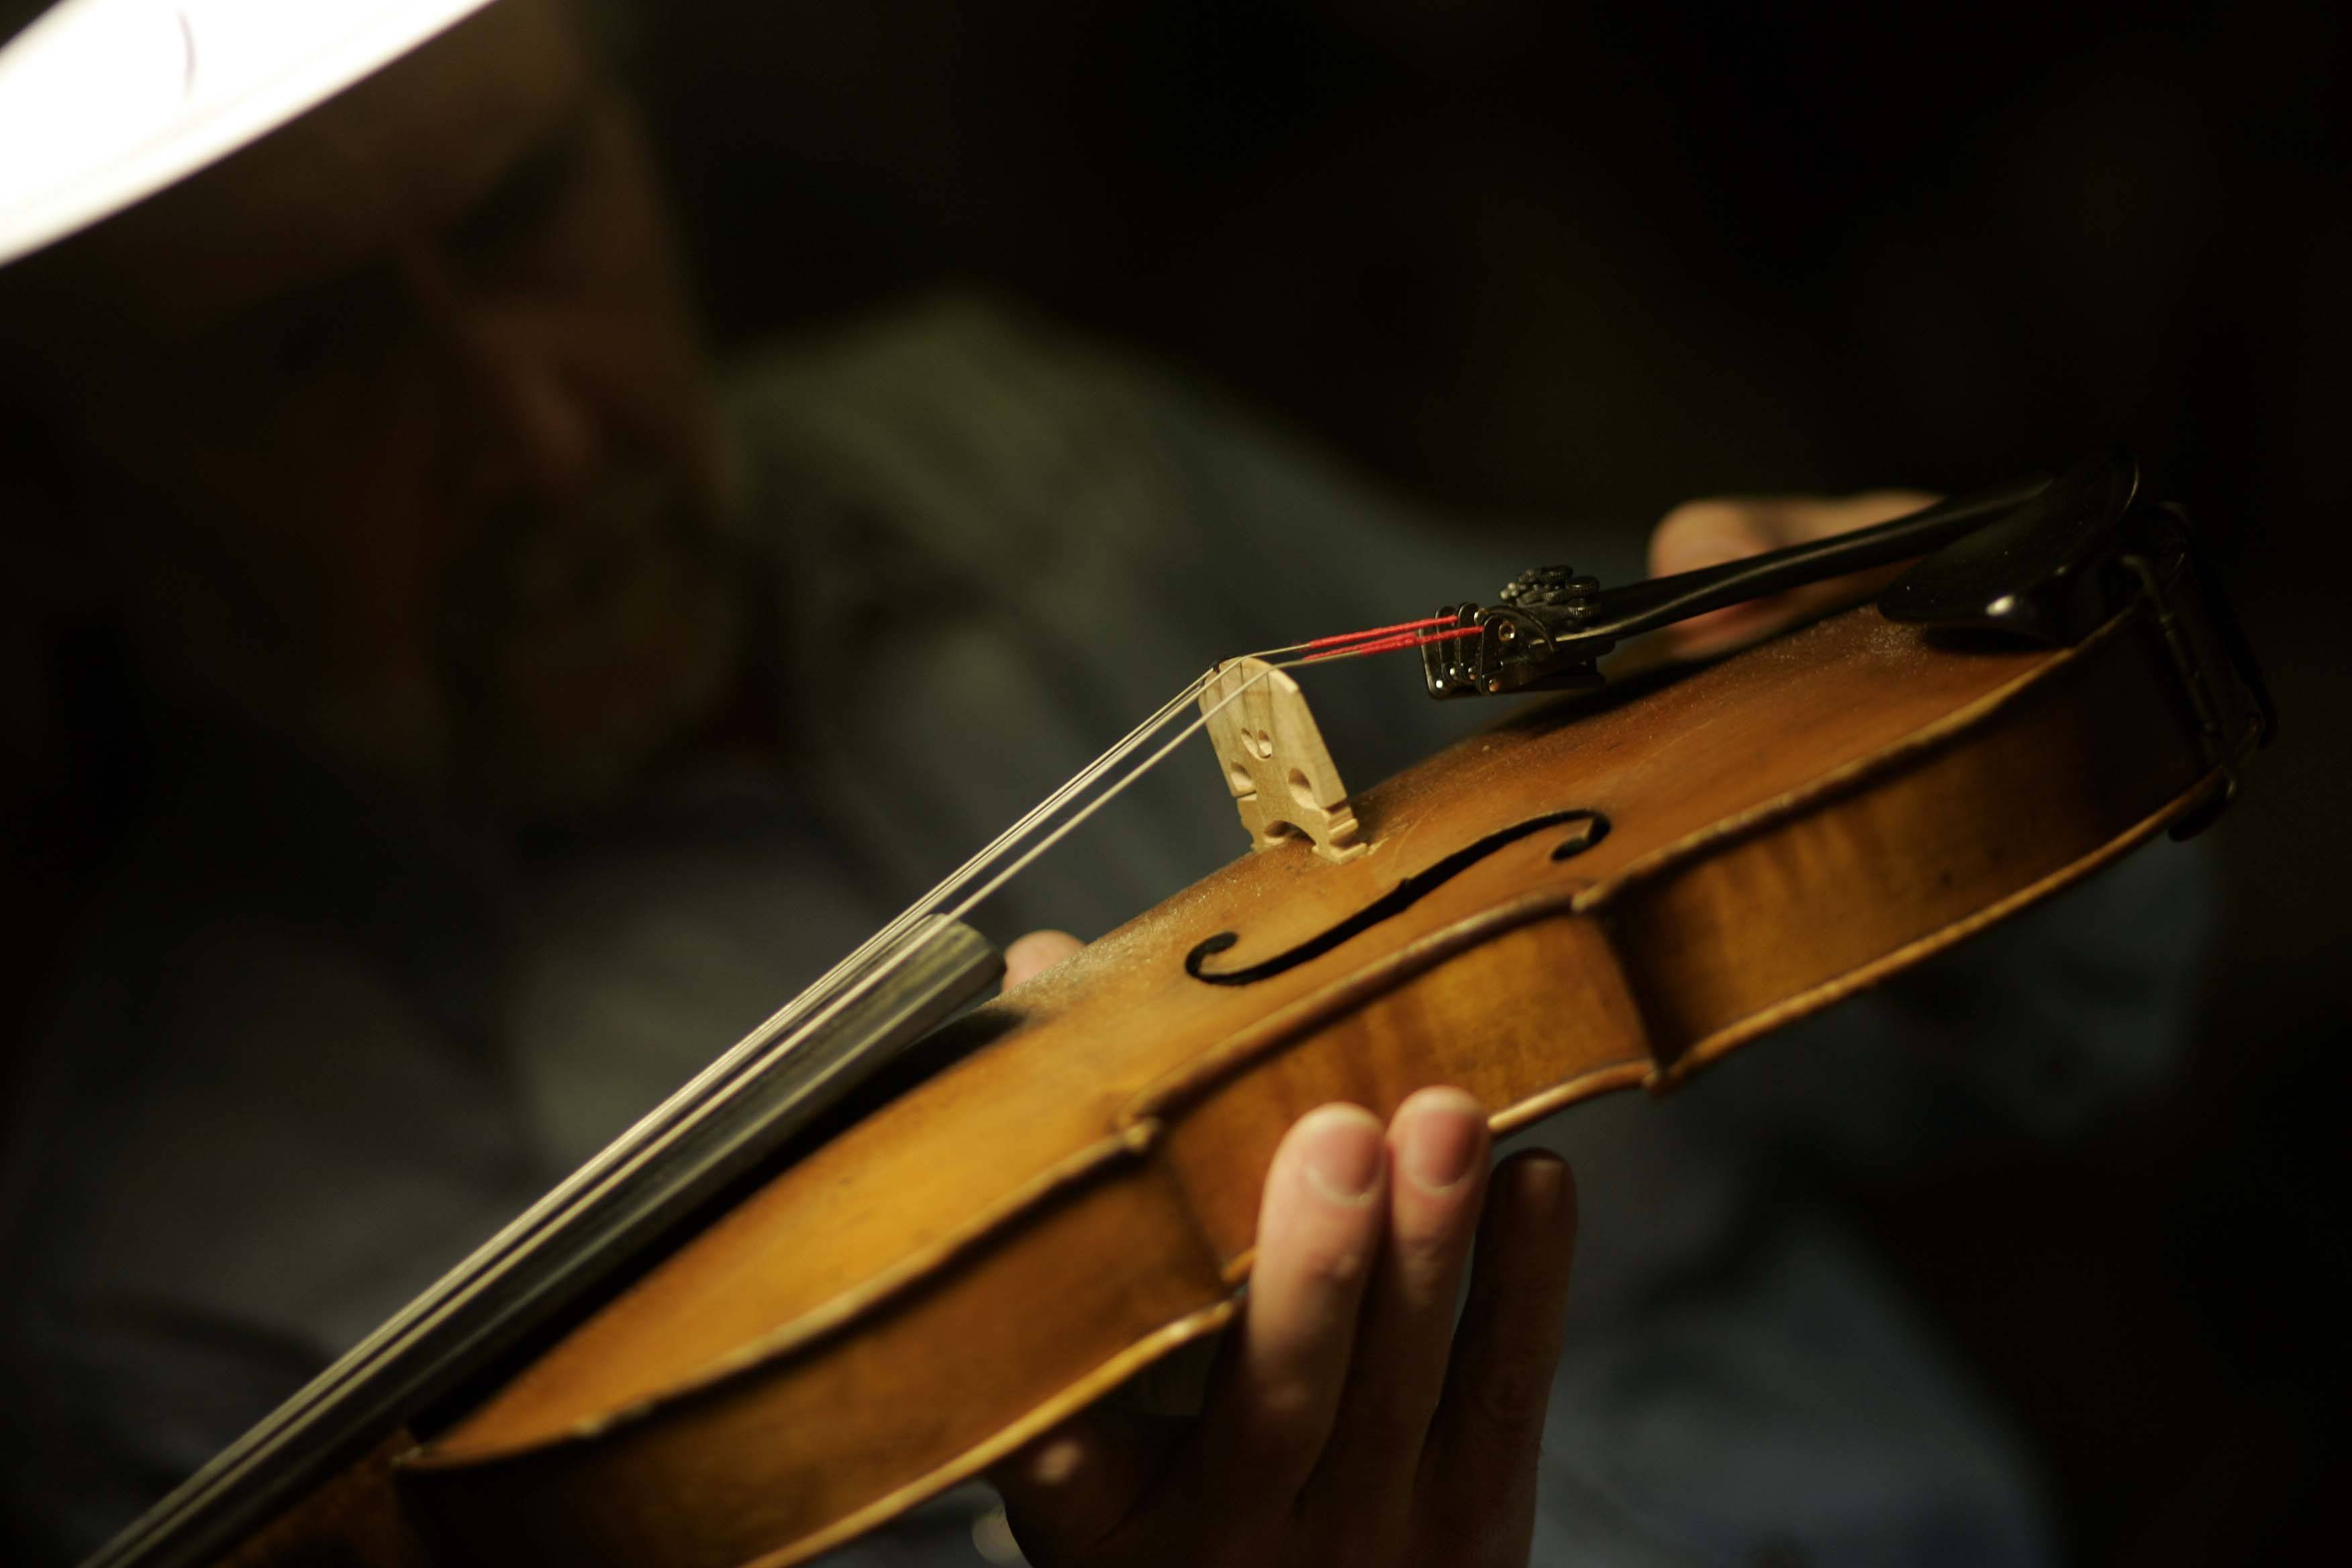 Brunkalla checks to make sure the sound post is in the correct place on a violin that was brought in for repair.